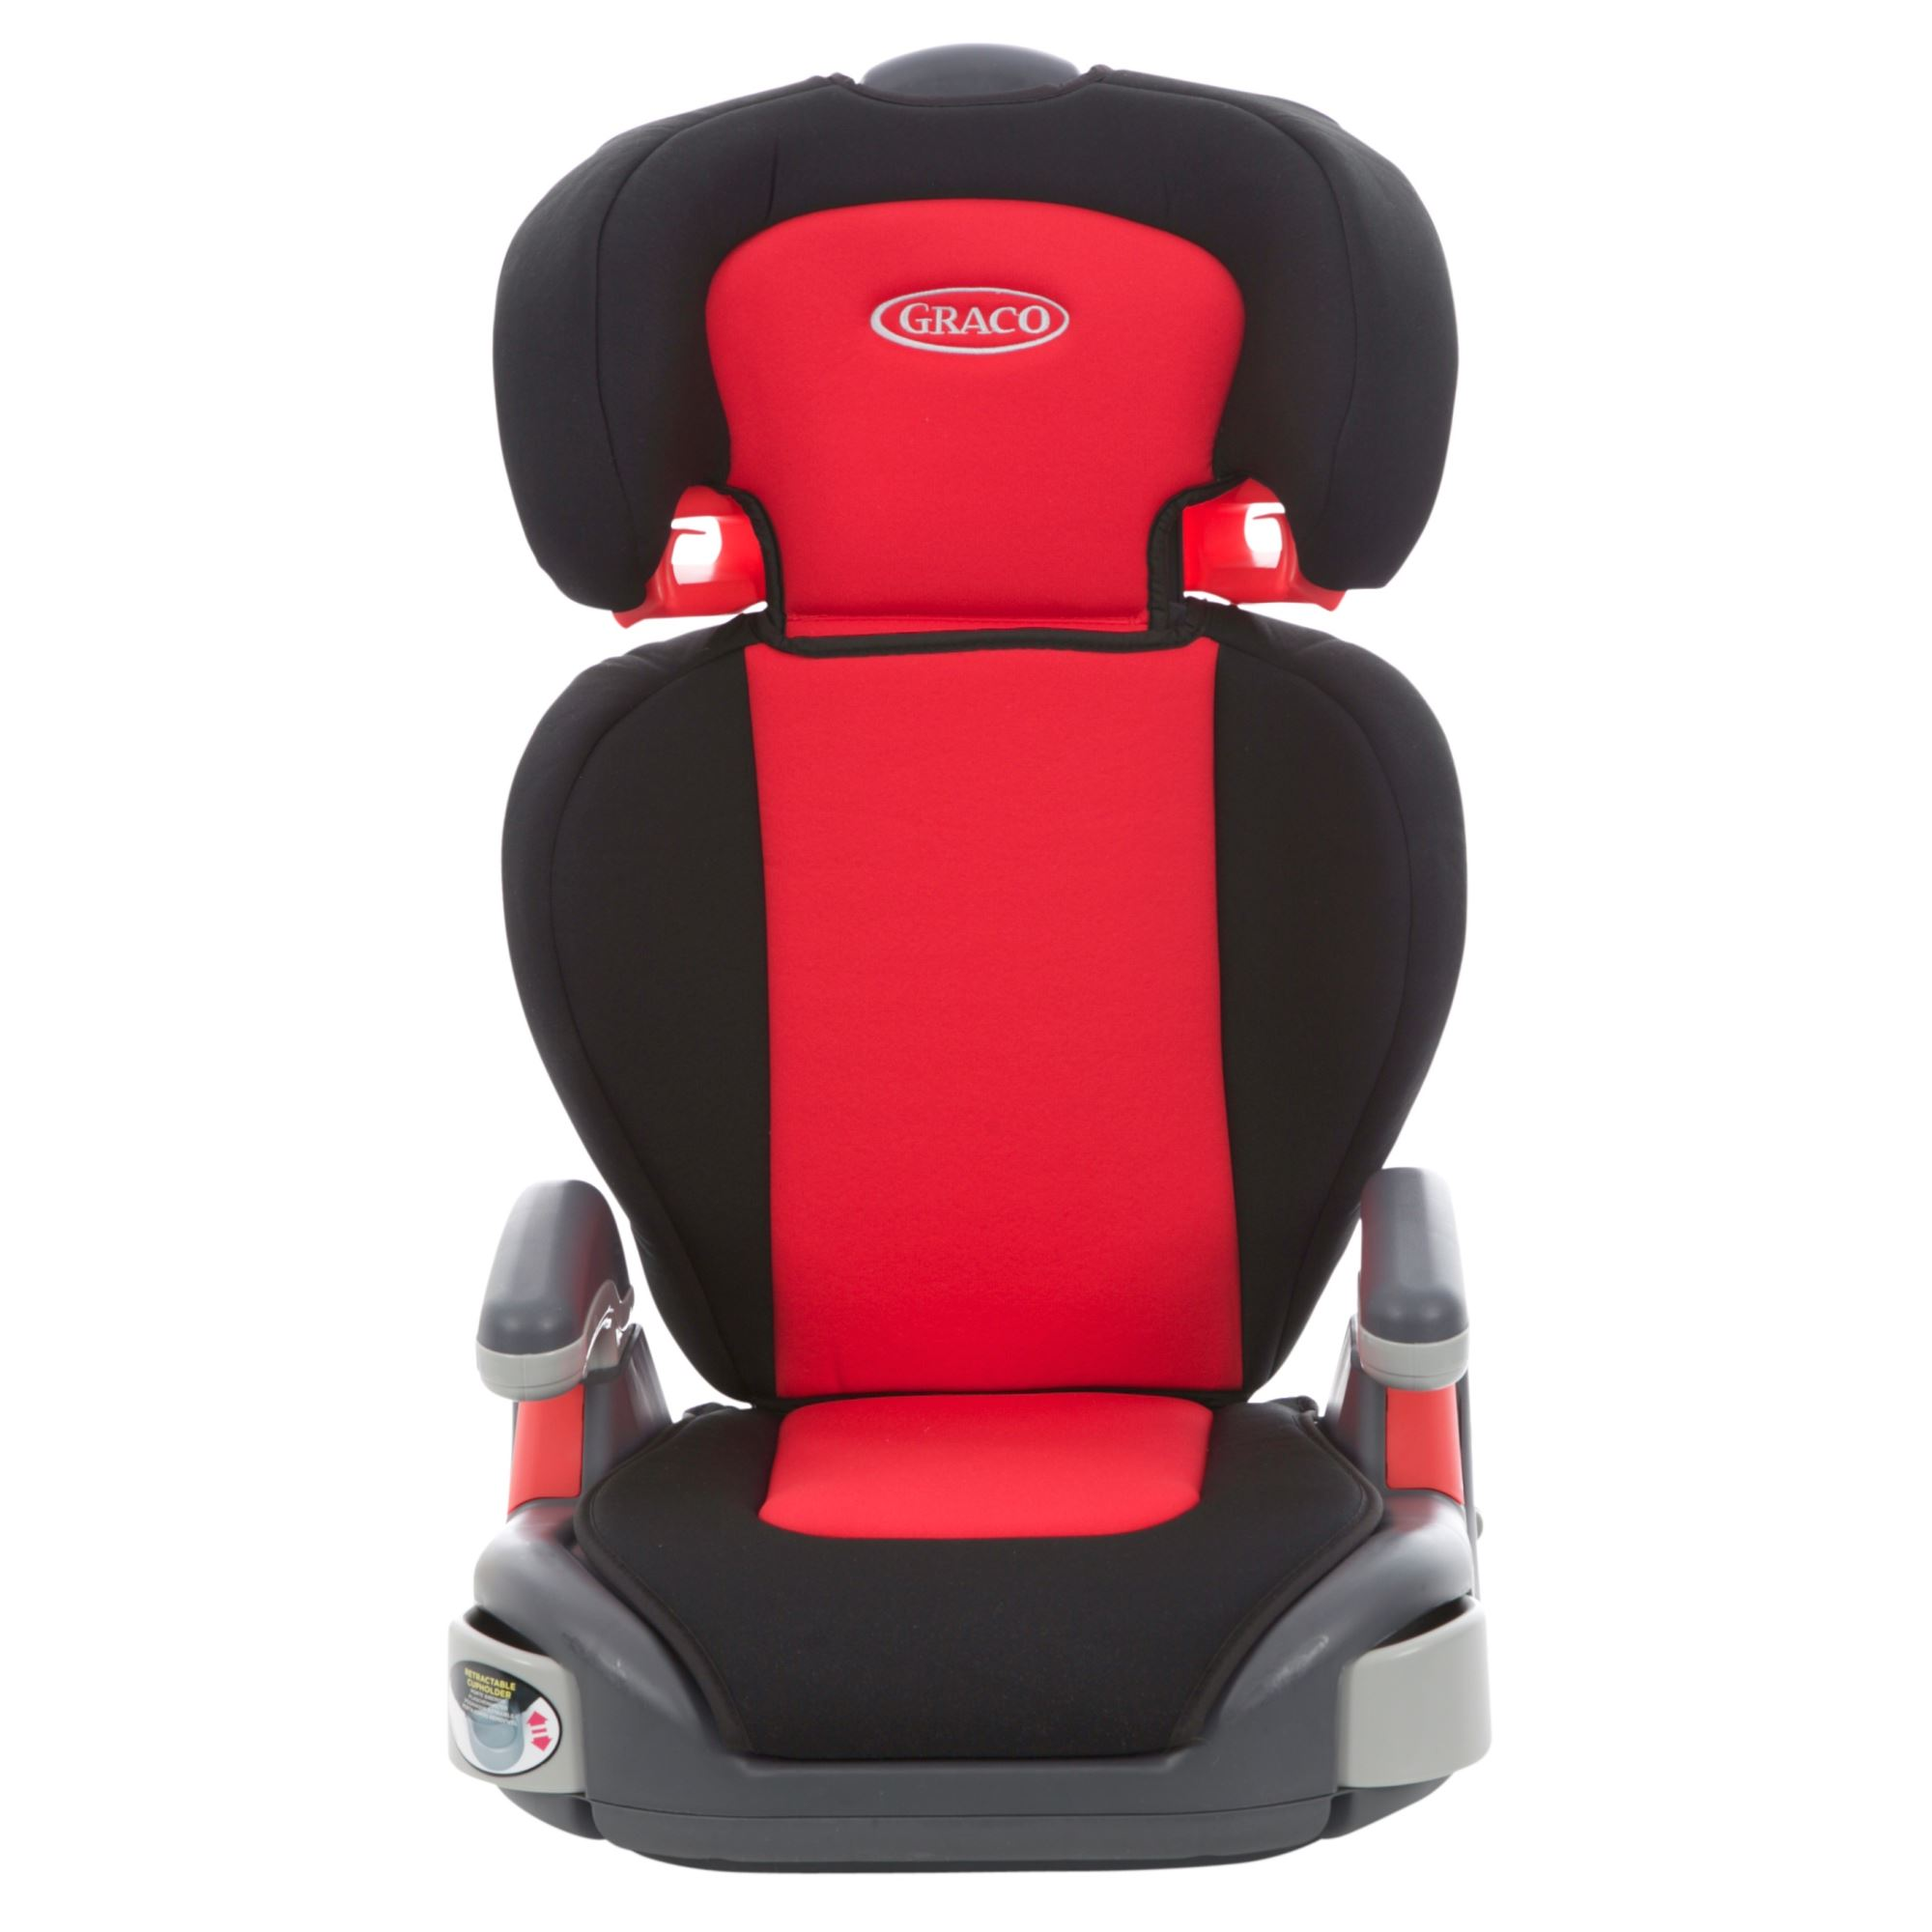 Graco Junior Maxi Lyon Group 23 Car Seat